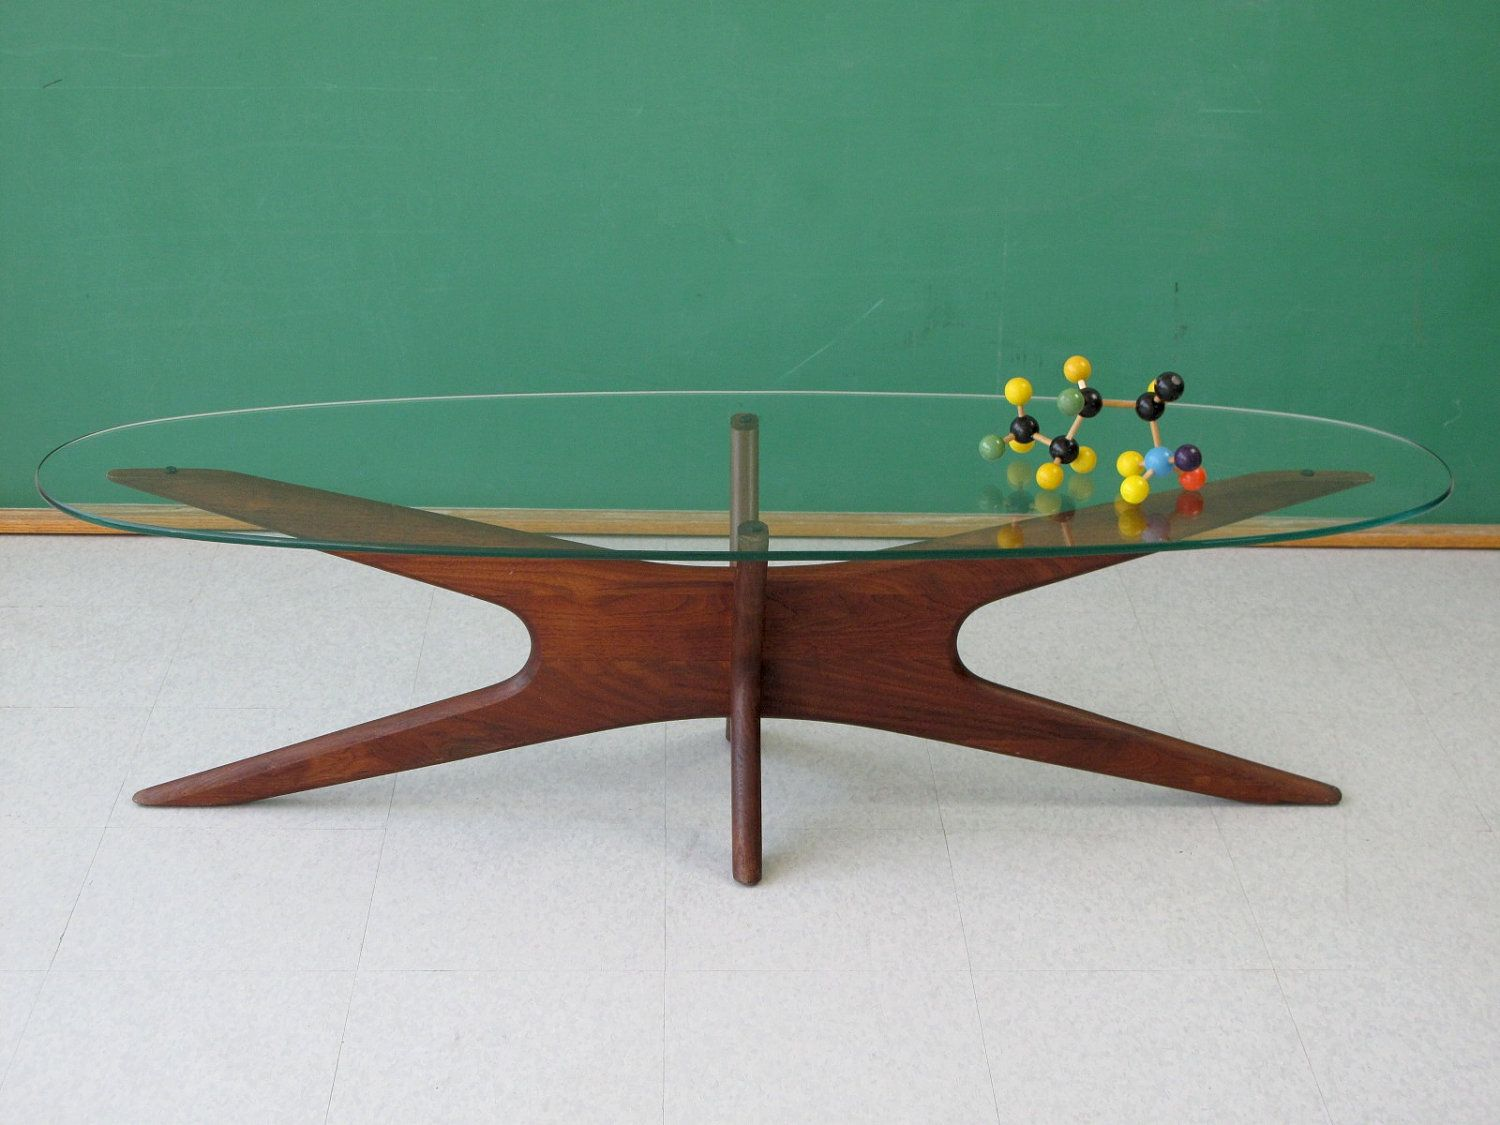 Vintage adrian pearsall jacks coffee table for craft associates vintage adrian pearsall jacks coffee table for craft associates danish modern mid geotapseo Choice Image